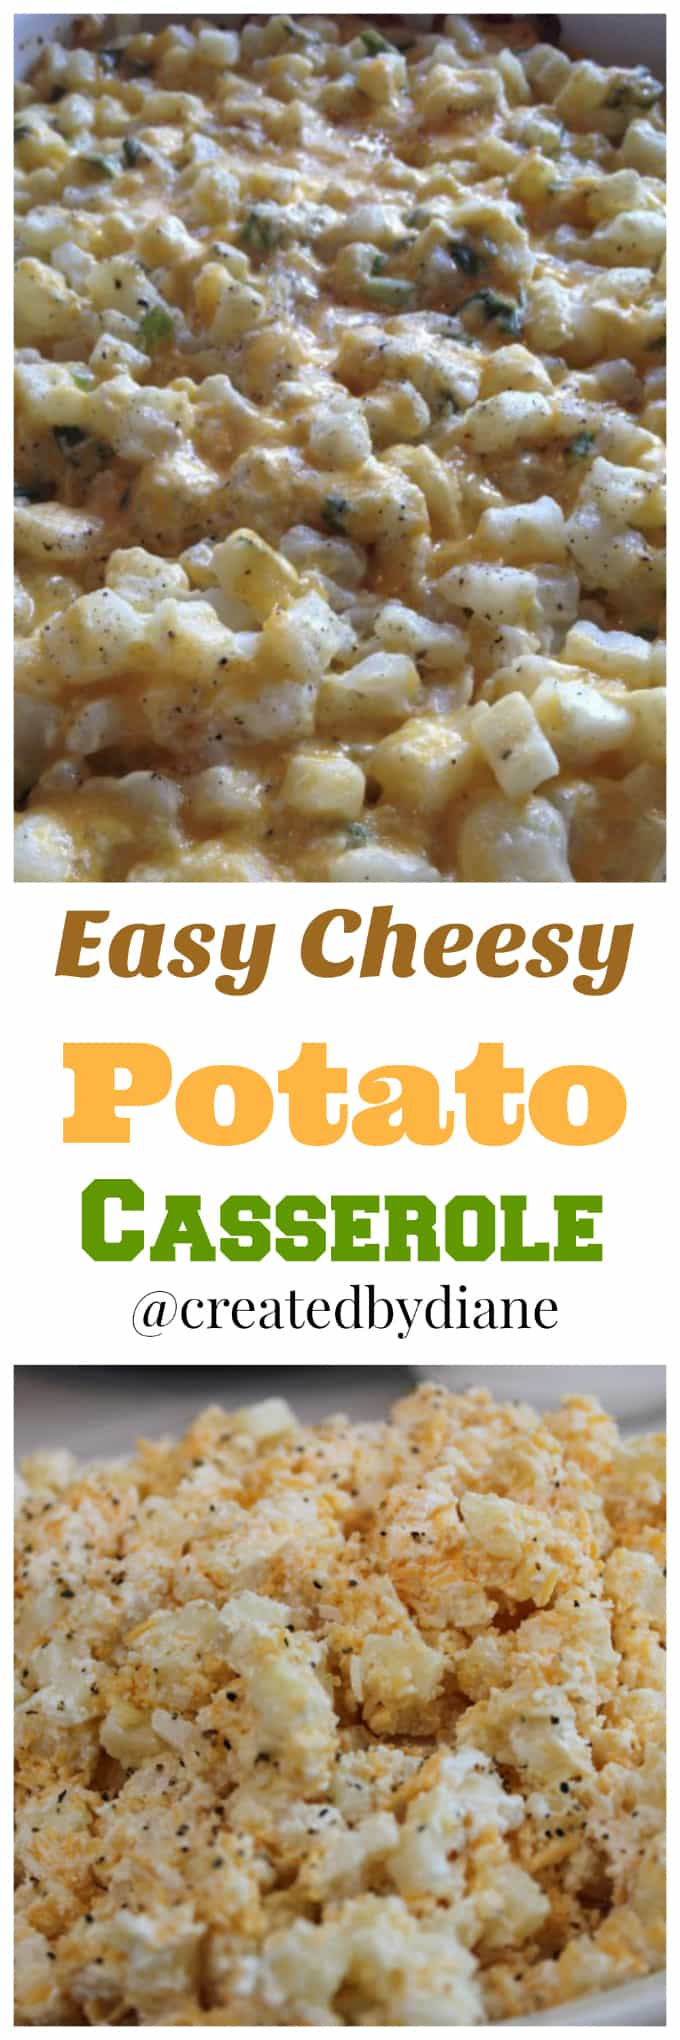 easy-cheesy-potato-casserole-createdbydiane